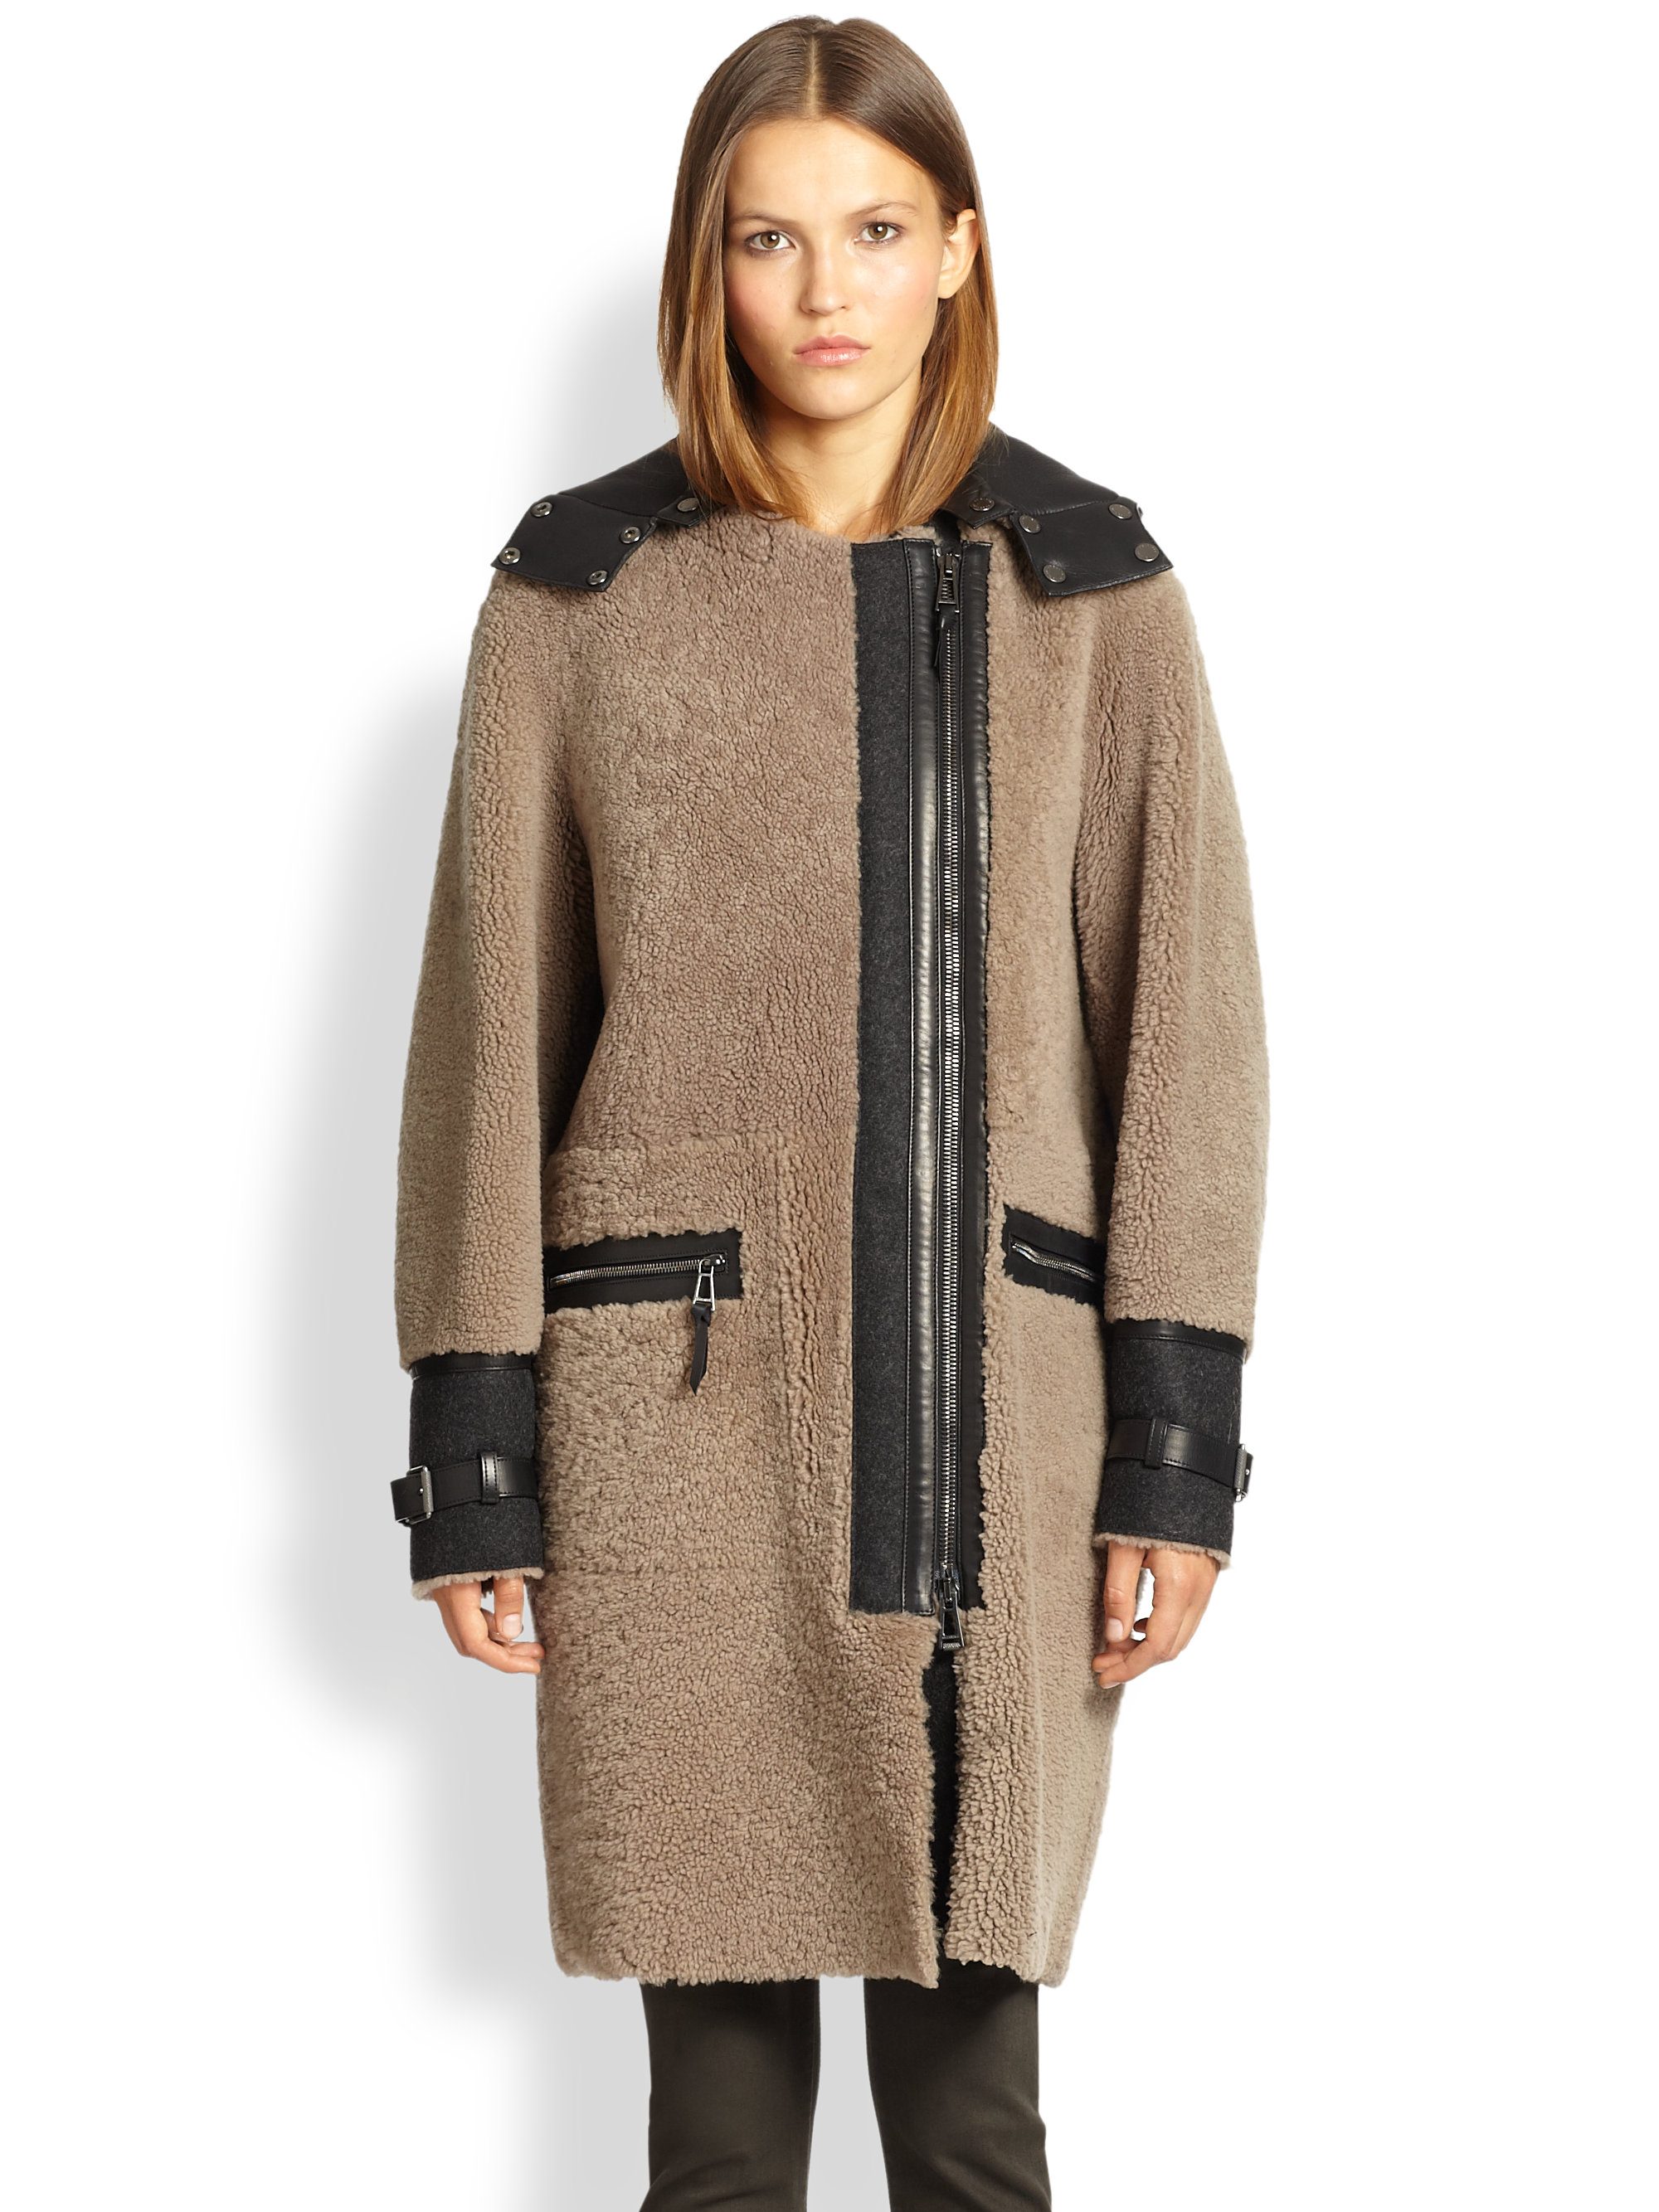 Belstaff Ava Long Shearling Coat in Natural | Lyst